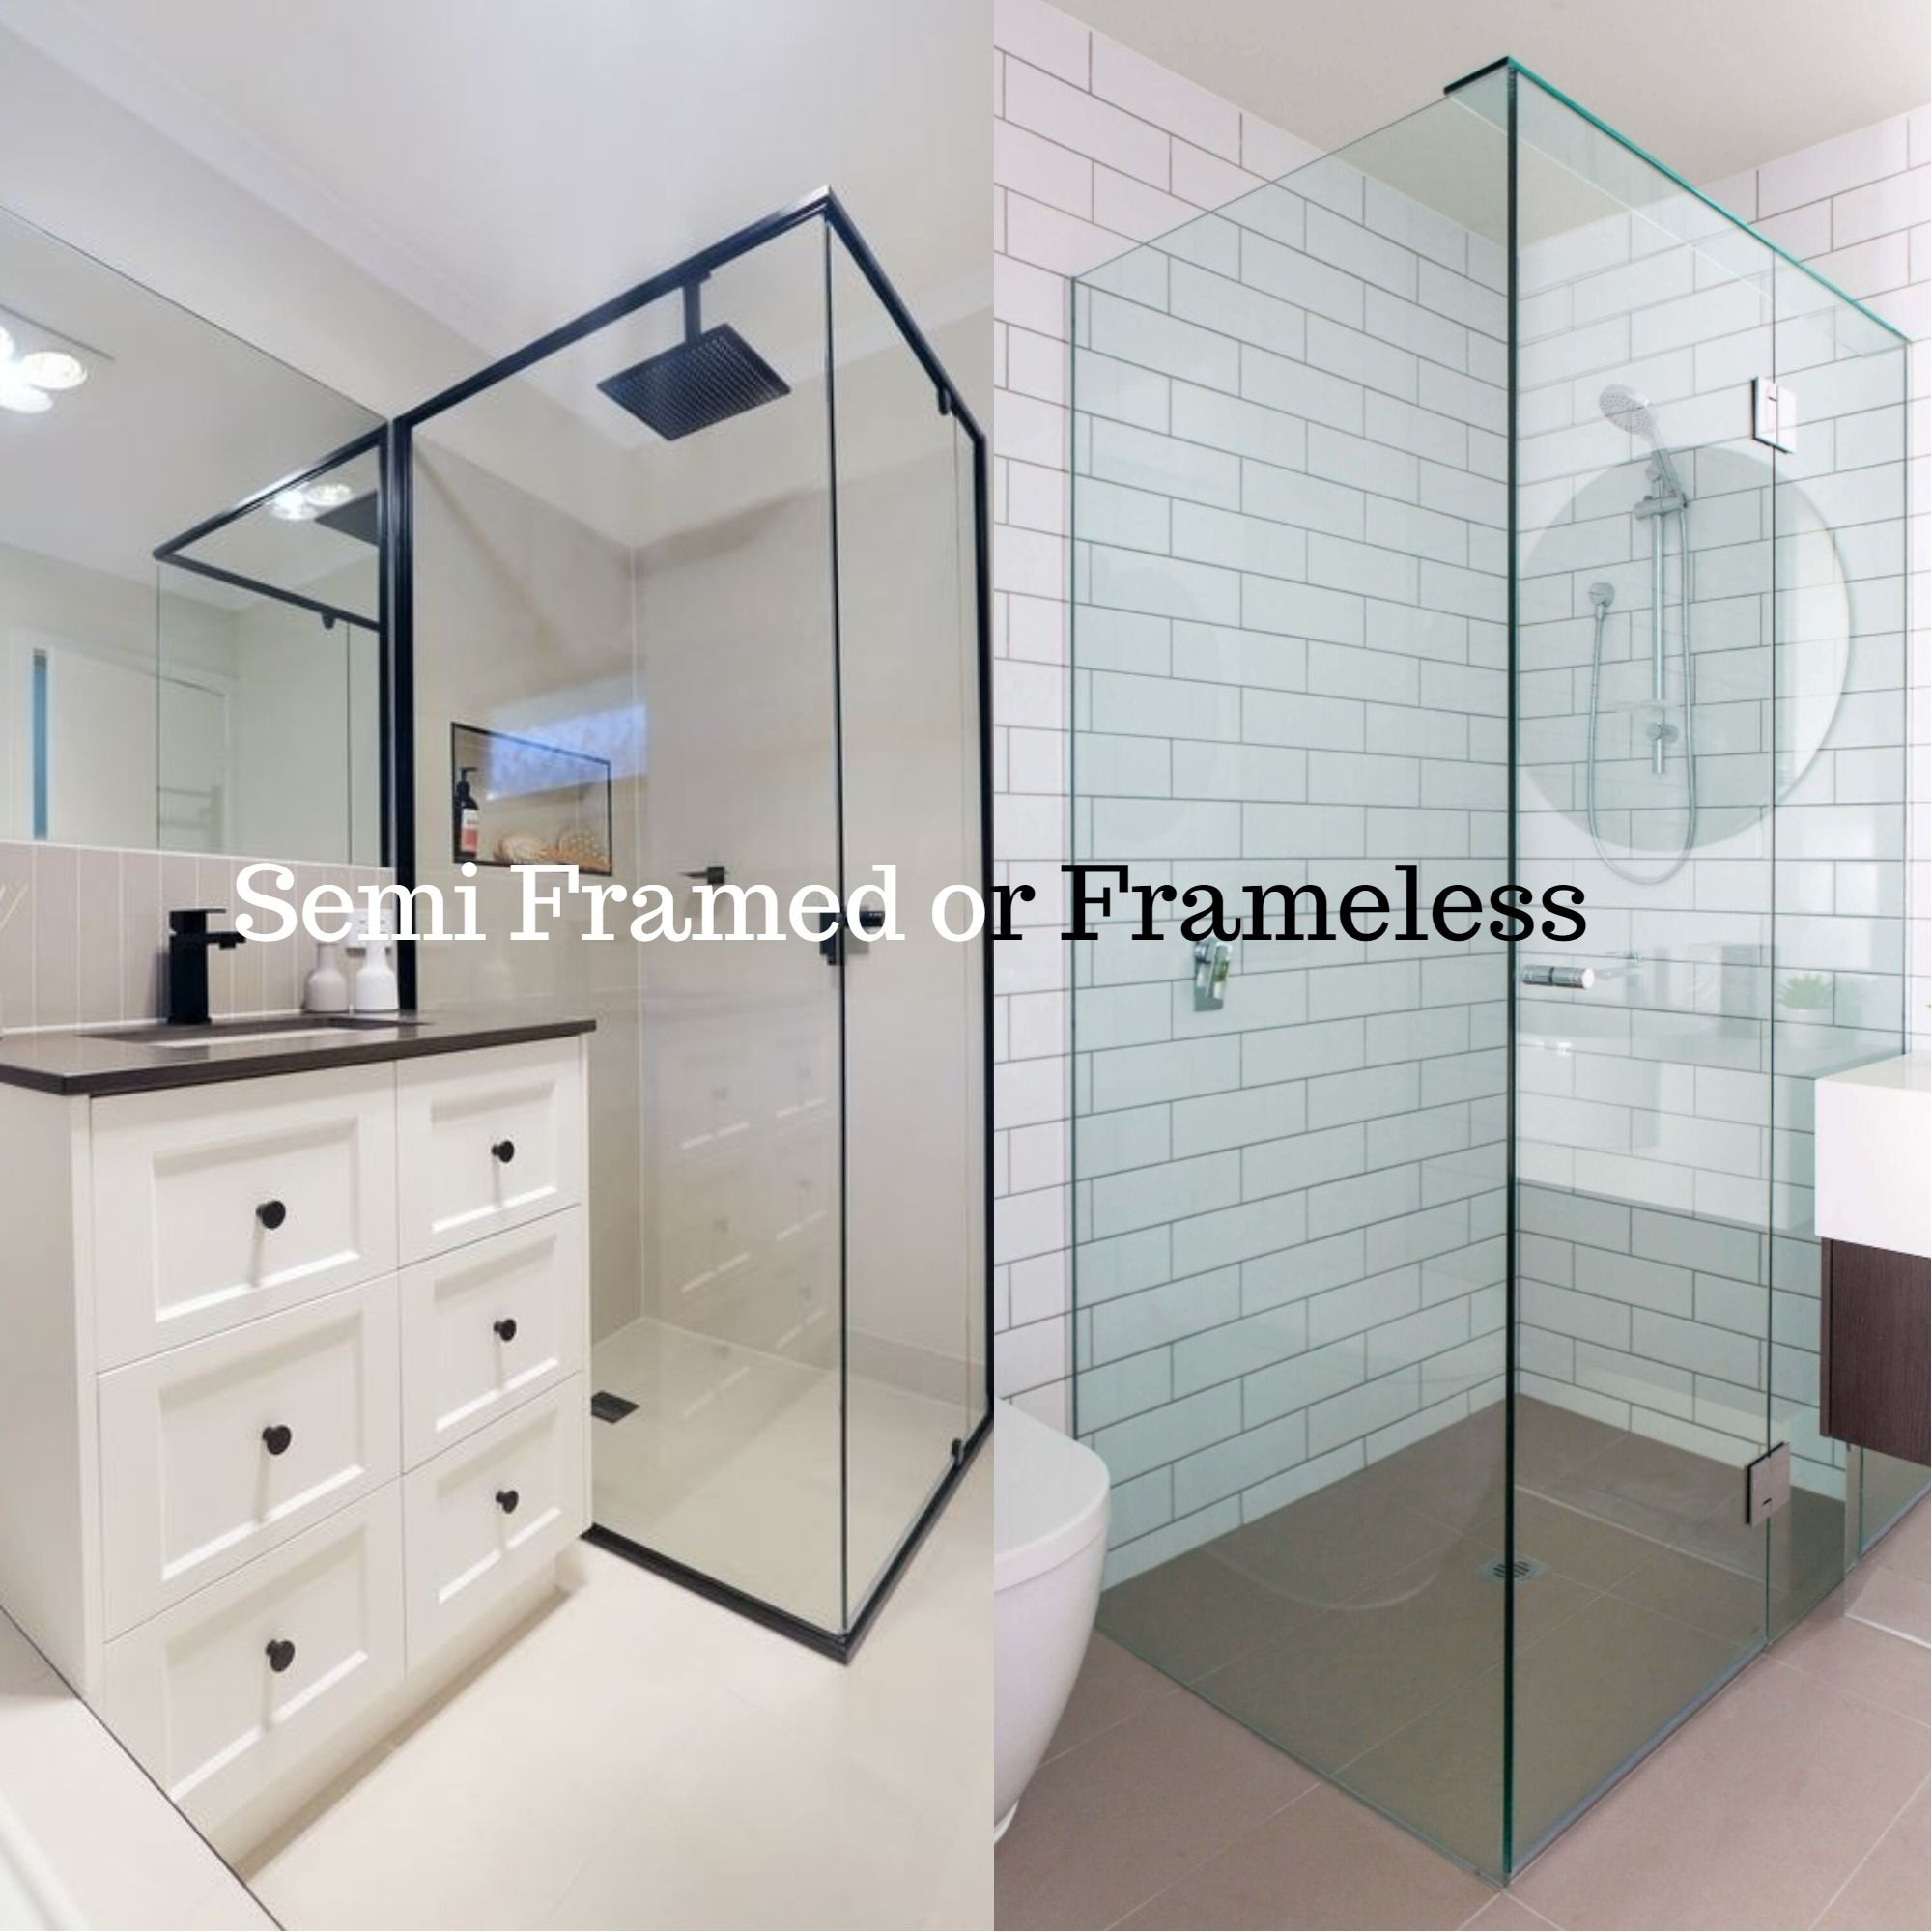 Often There Is A High Degree Of Confusion On The Difference Between The Semi Frameless And Frameless Showers Scr Bathroom Renovations Perth Bathroom Renovations